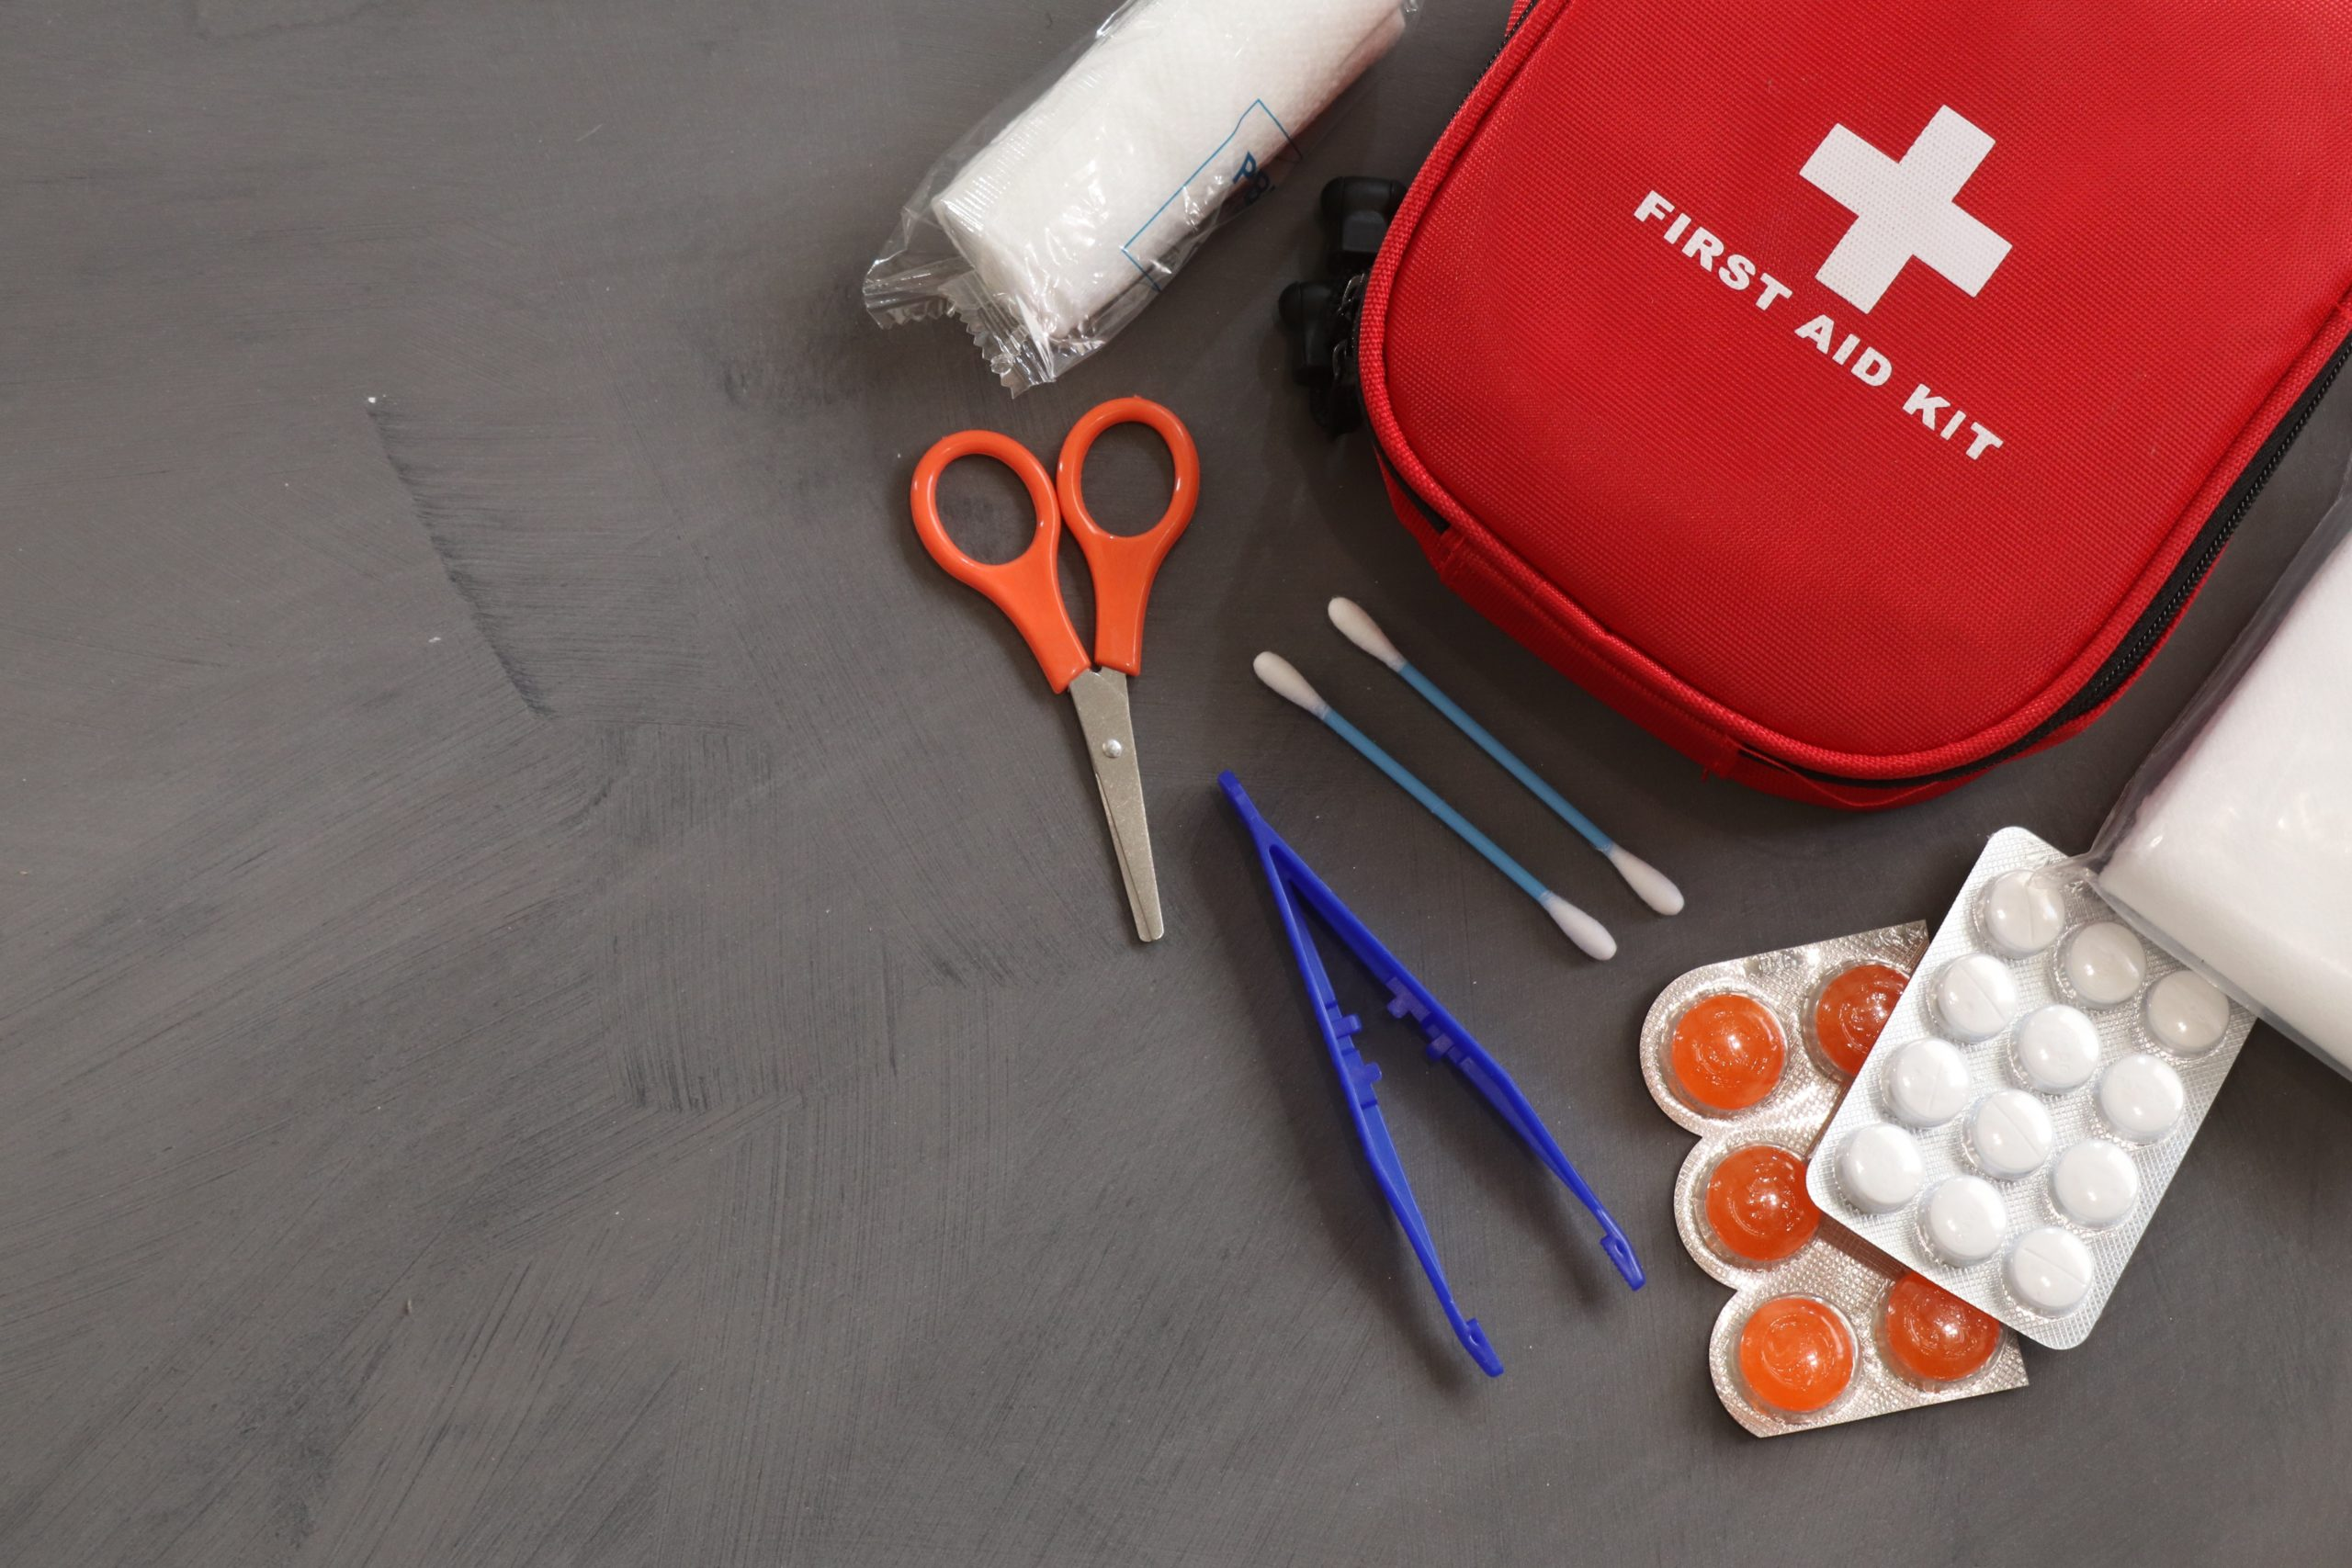 Basic First Aid Tips for Emergency